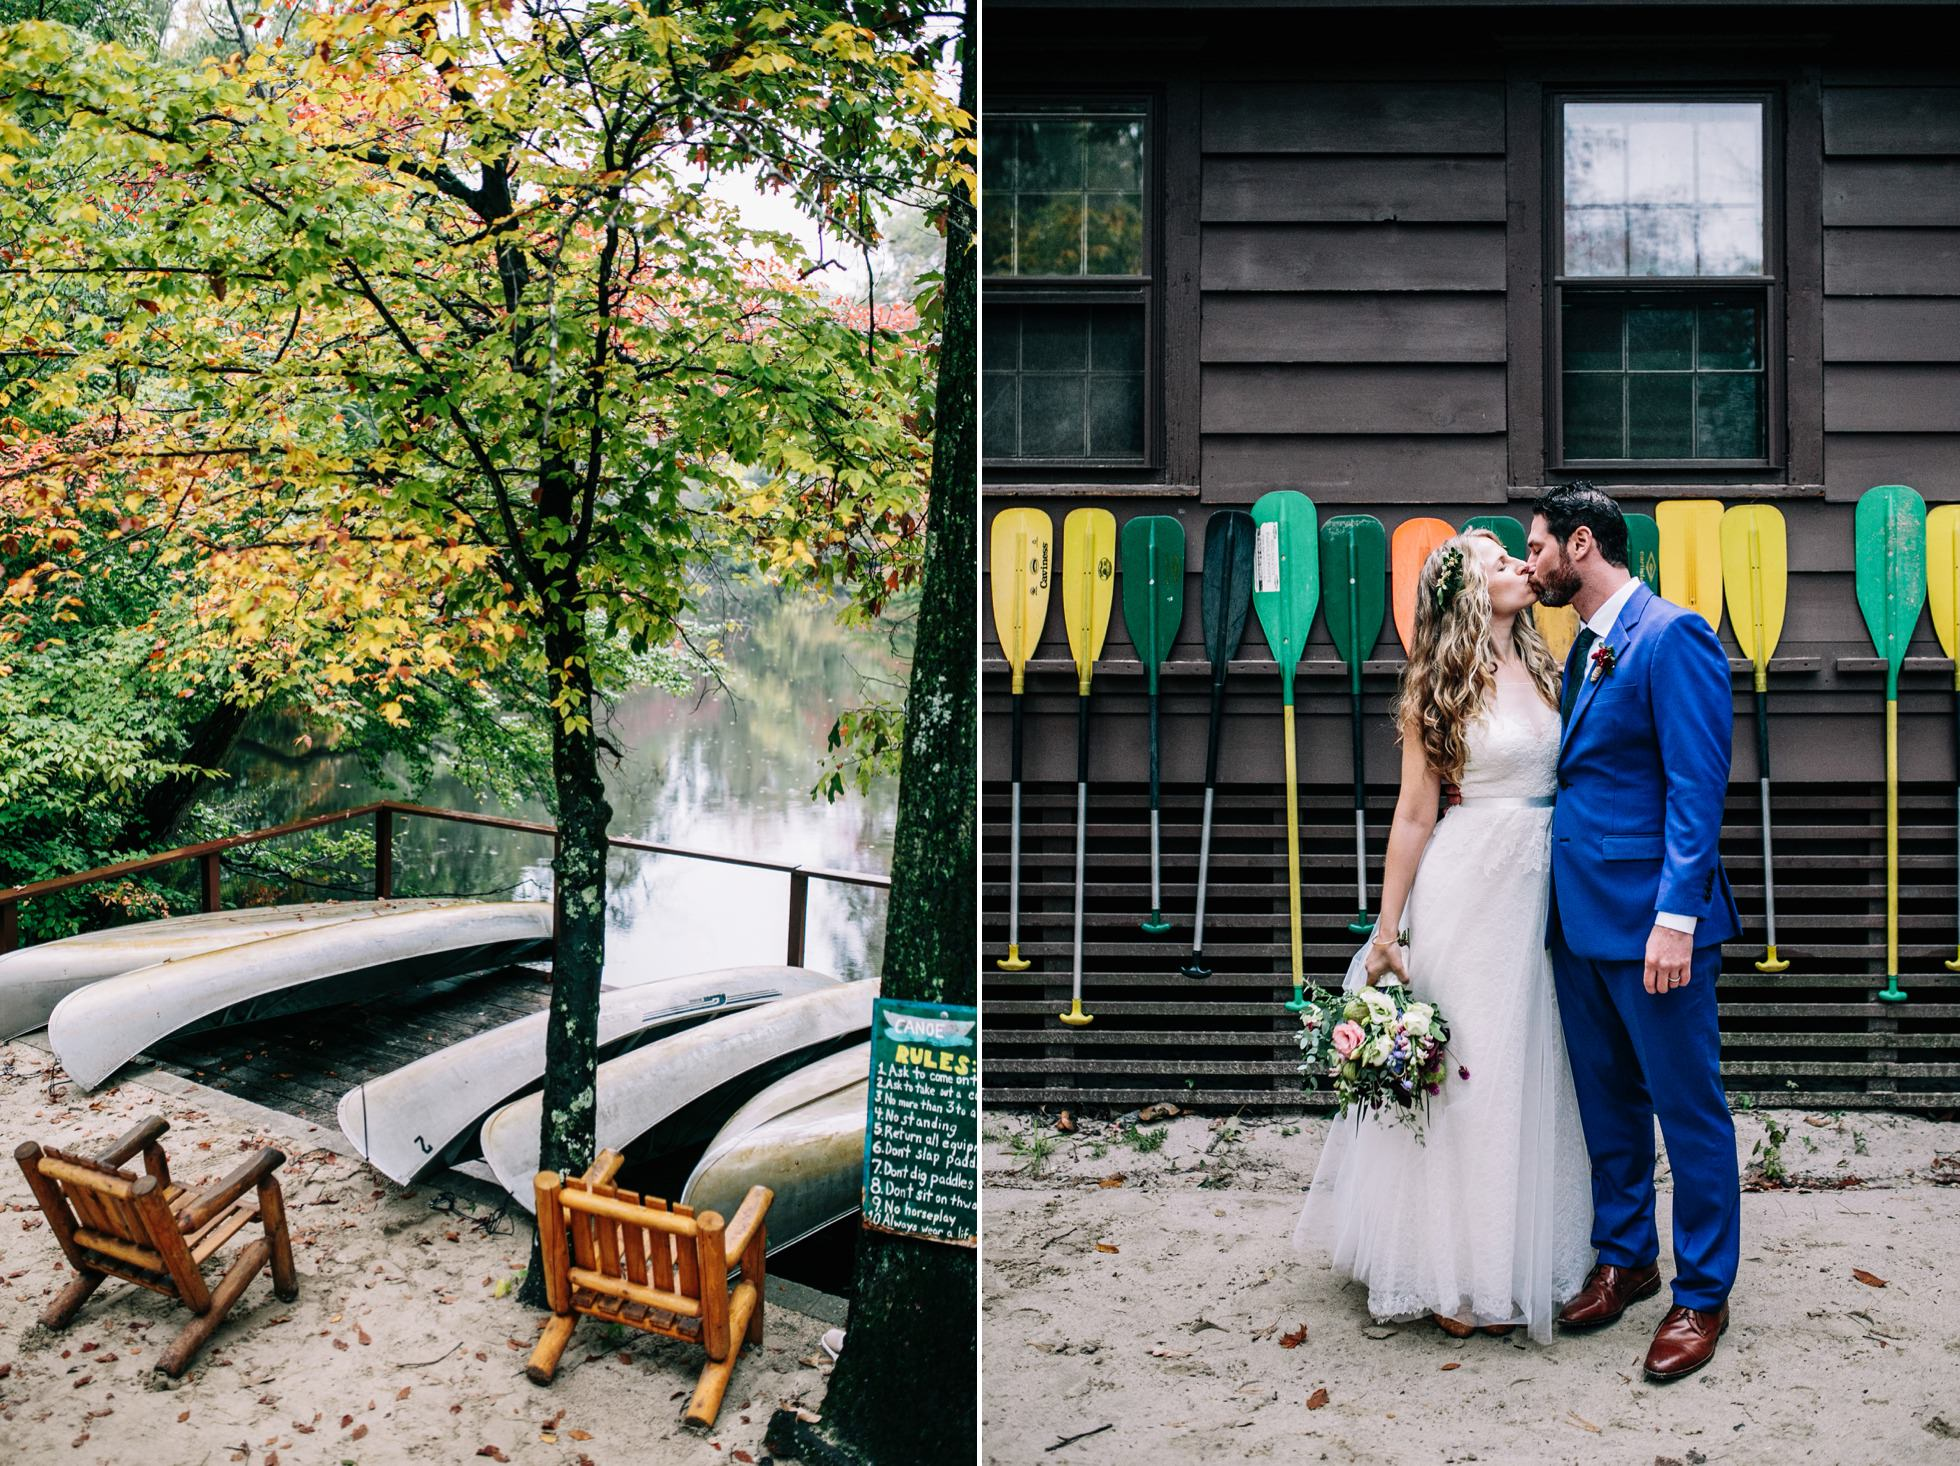 Best Unique PA NY NJ Wedding Venues - Campground Scout Camp Canoe